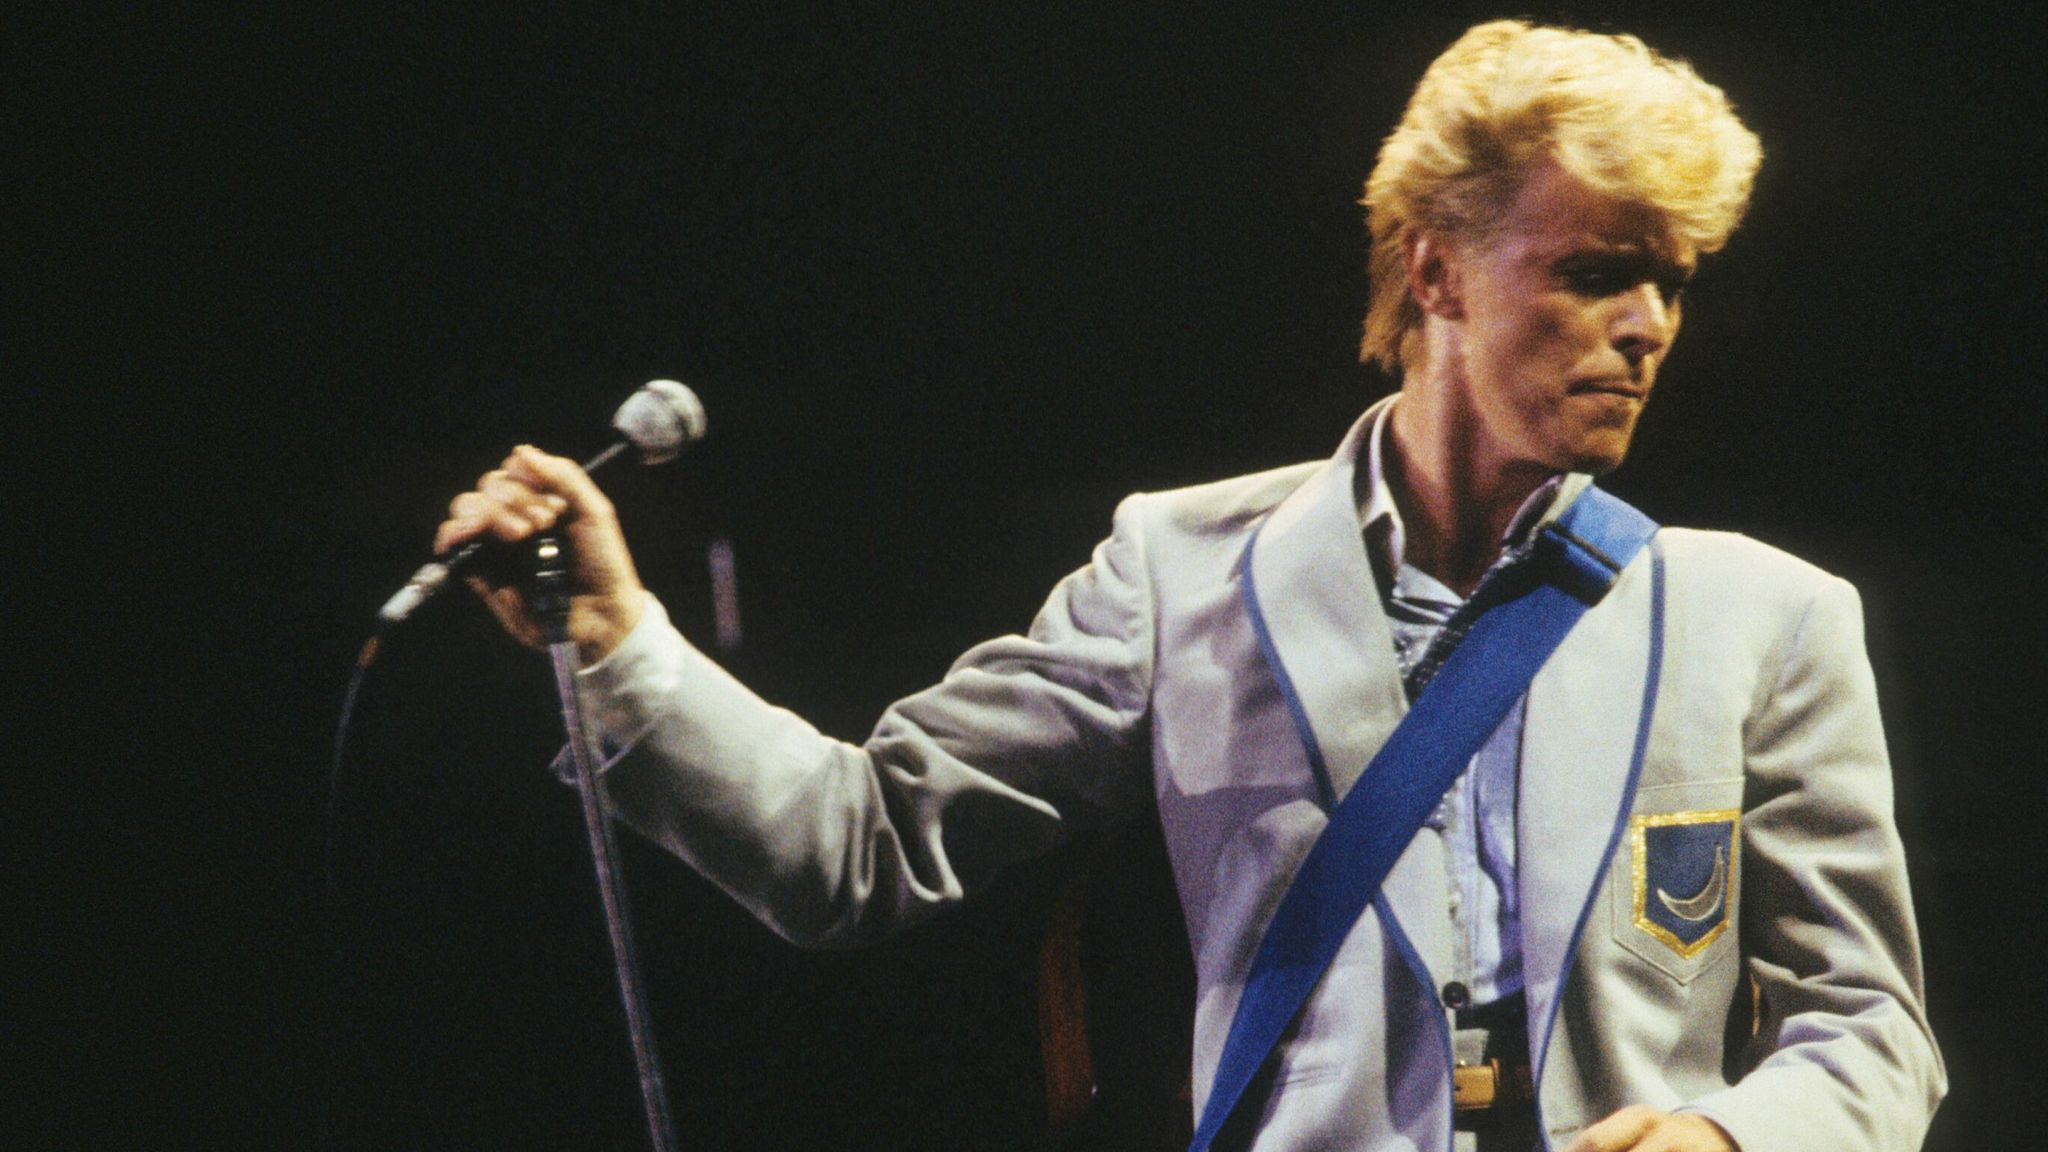 David Bowie in concert on his 'Serious Moonlight' tour in 1983. Pic: Andre Csillag/Shutterstock